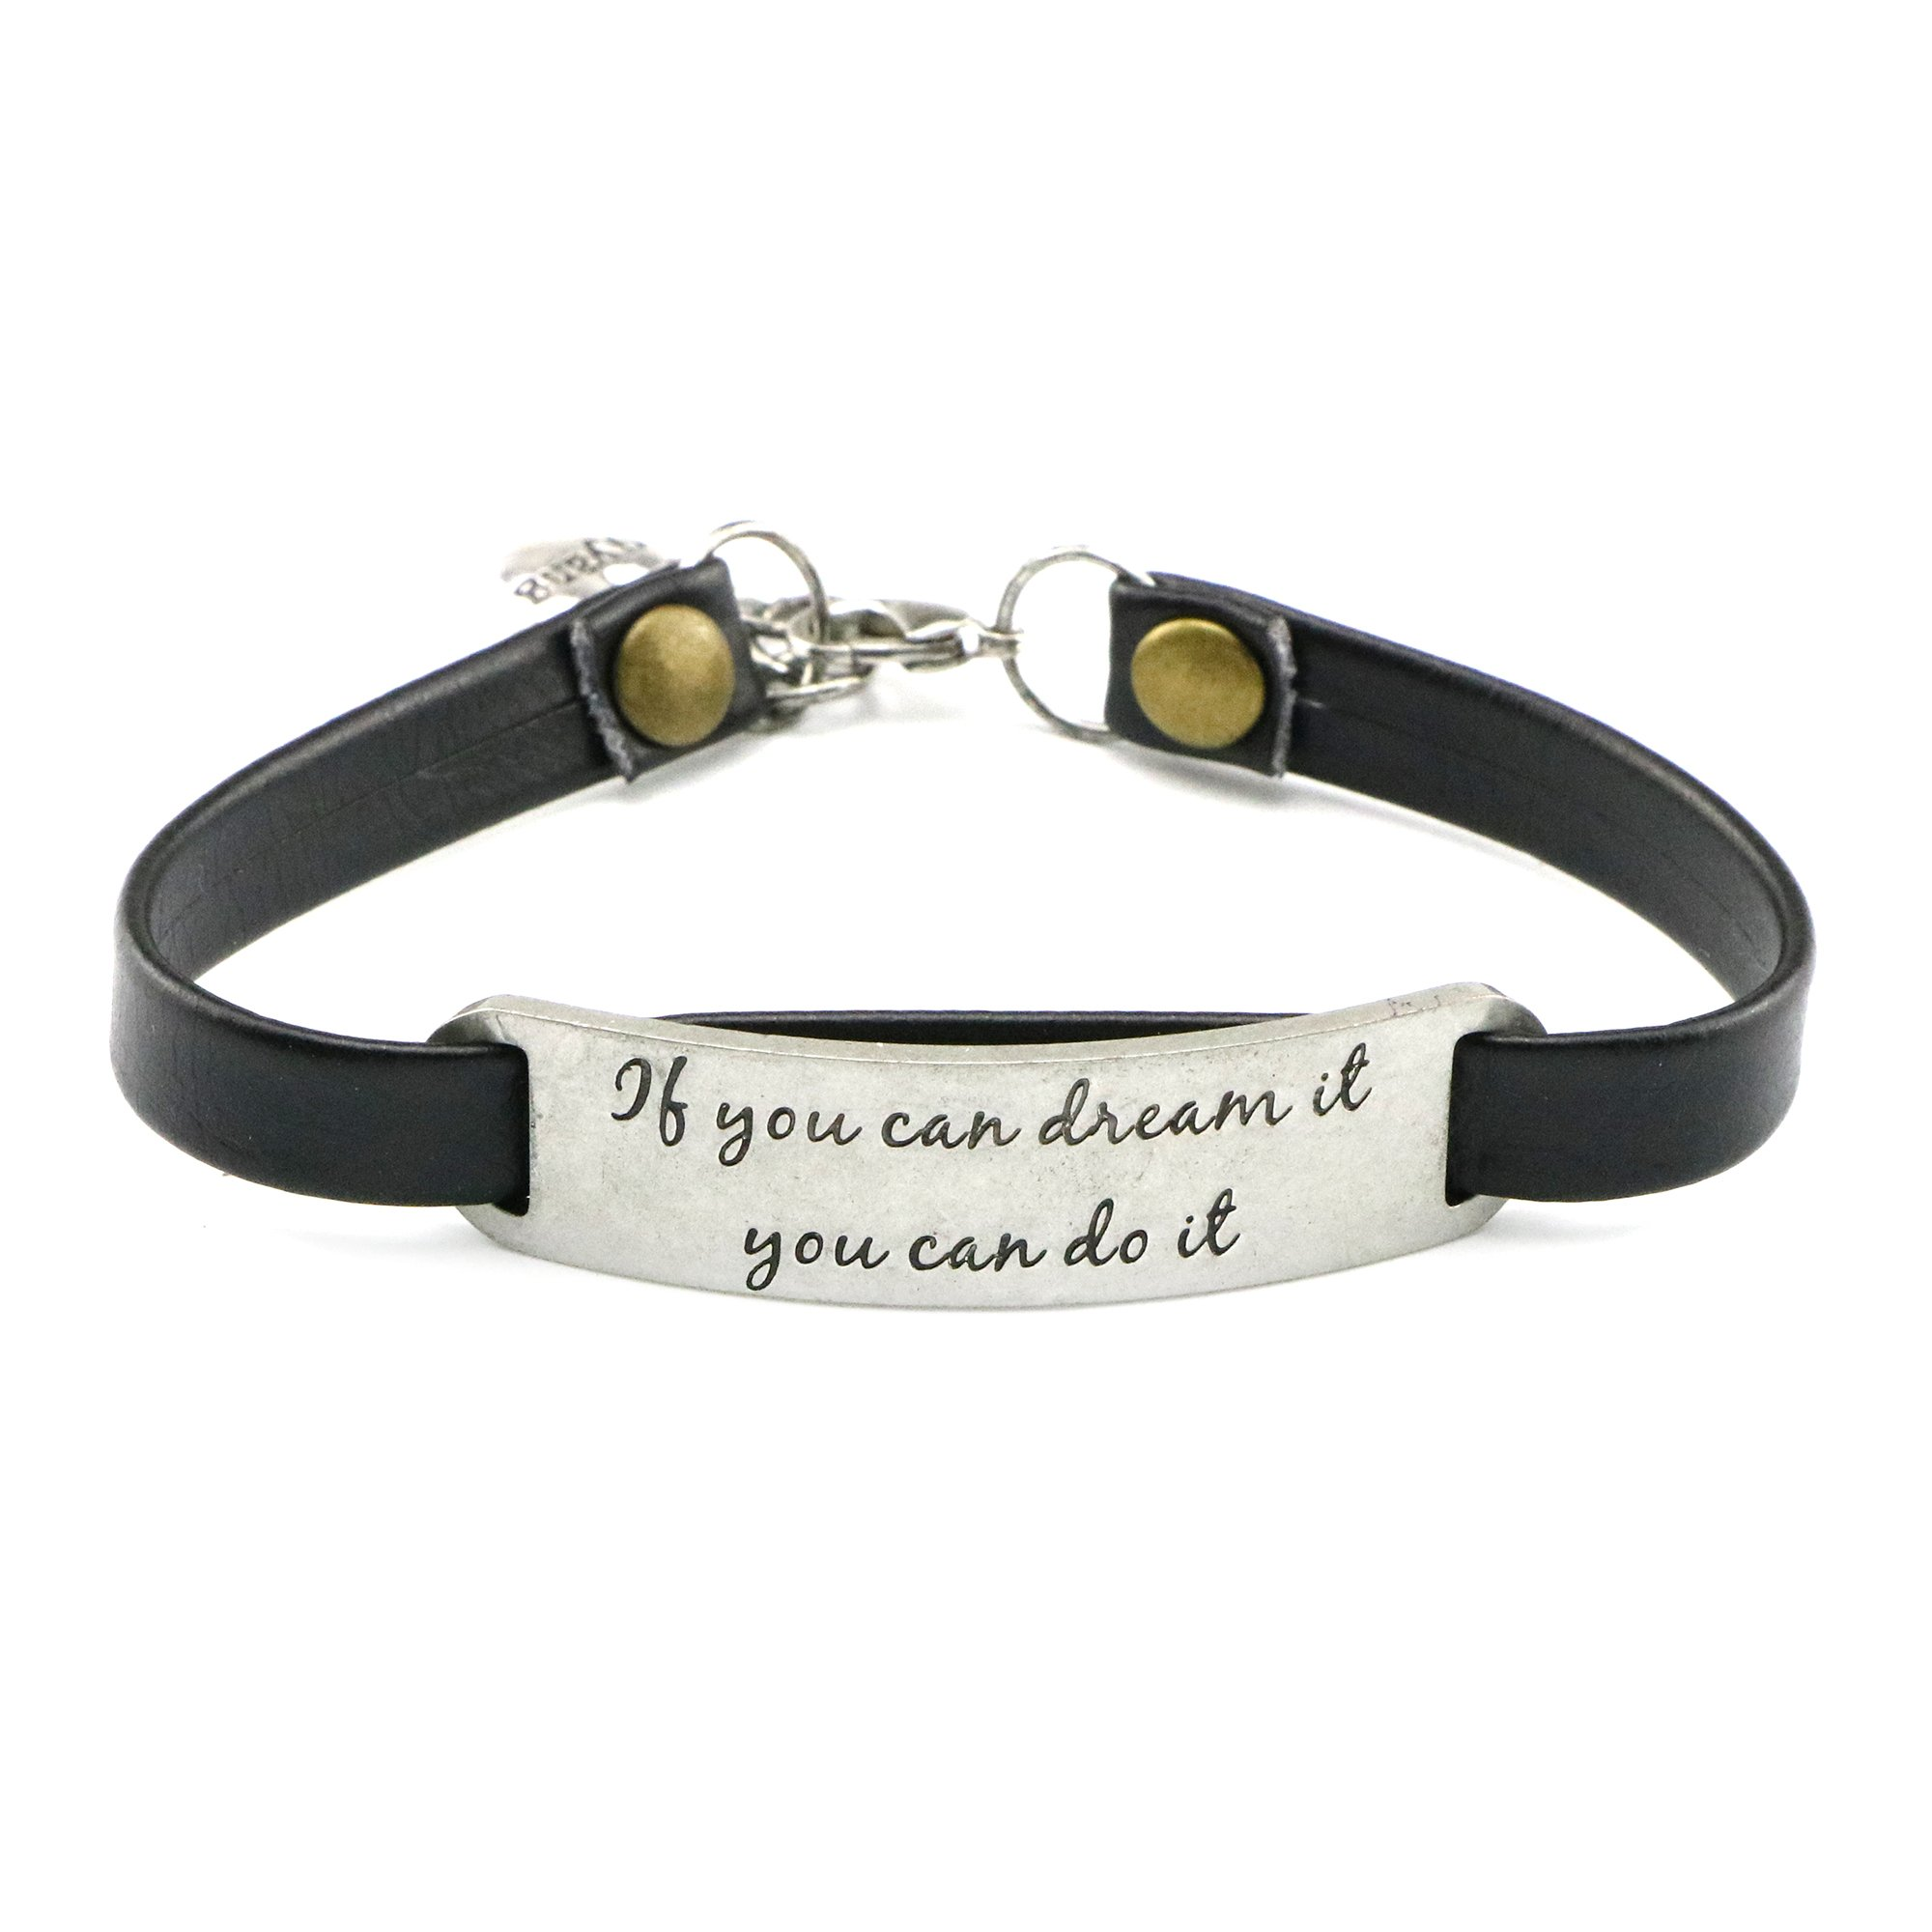 UNQJRY Graduation Gift for Her Inspirational Jewelry Leather Bracelet If you dream it, you can do it